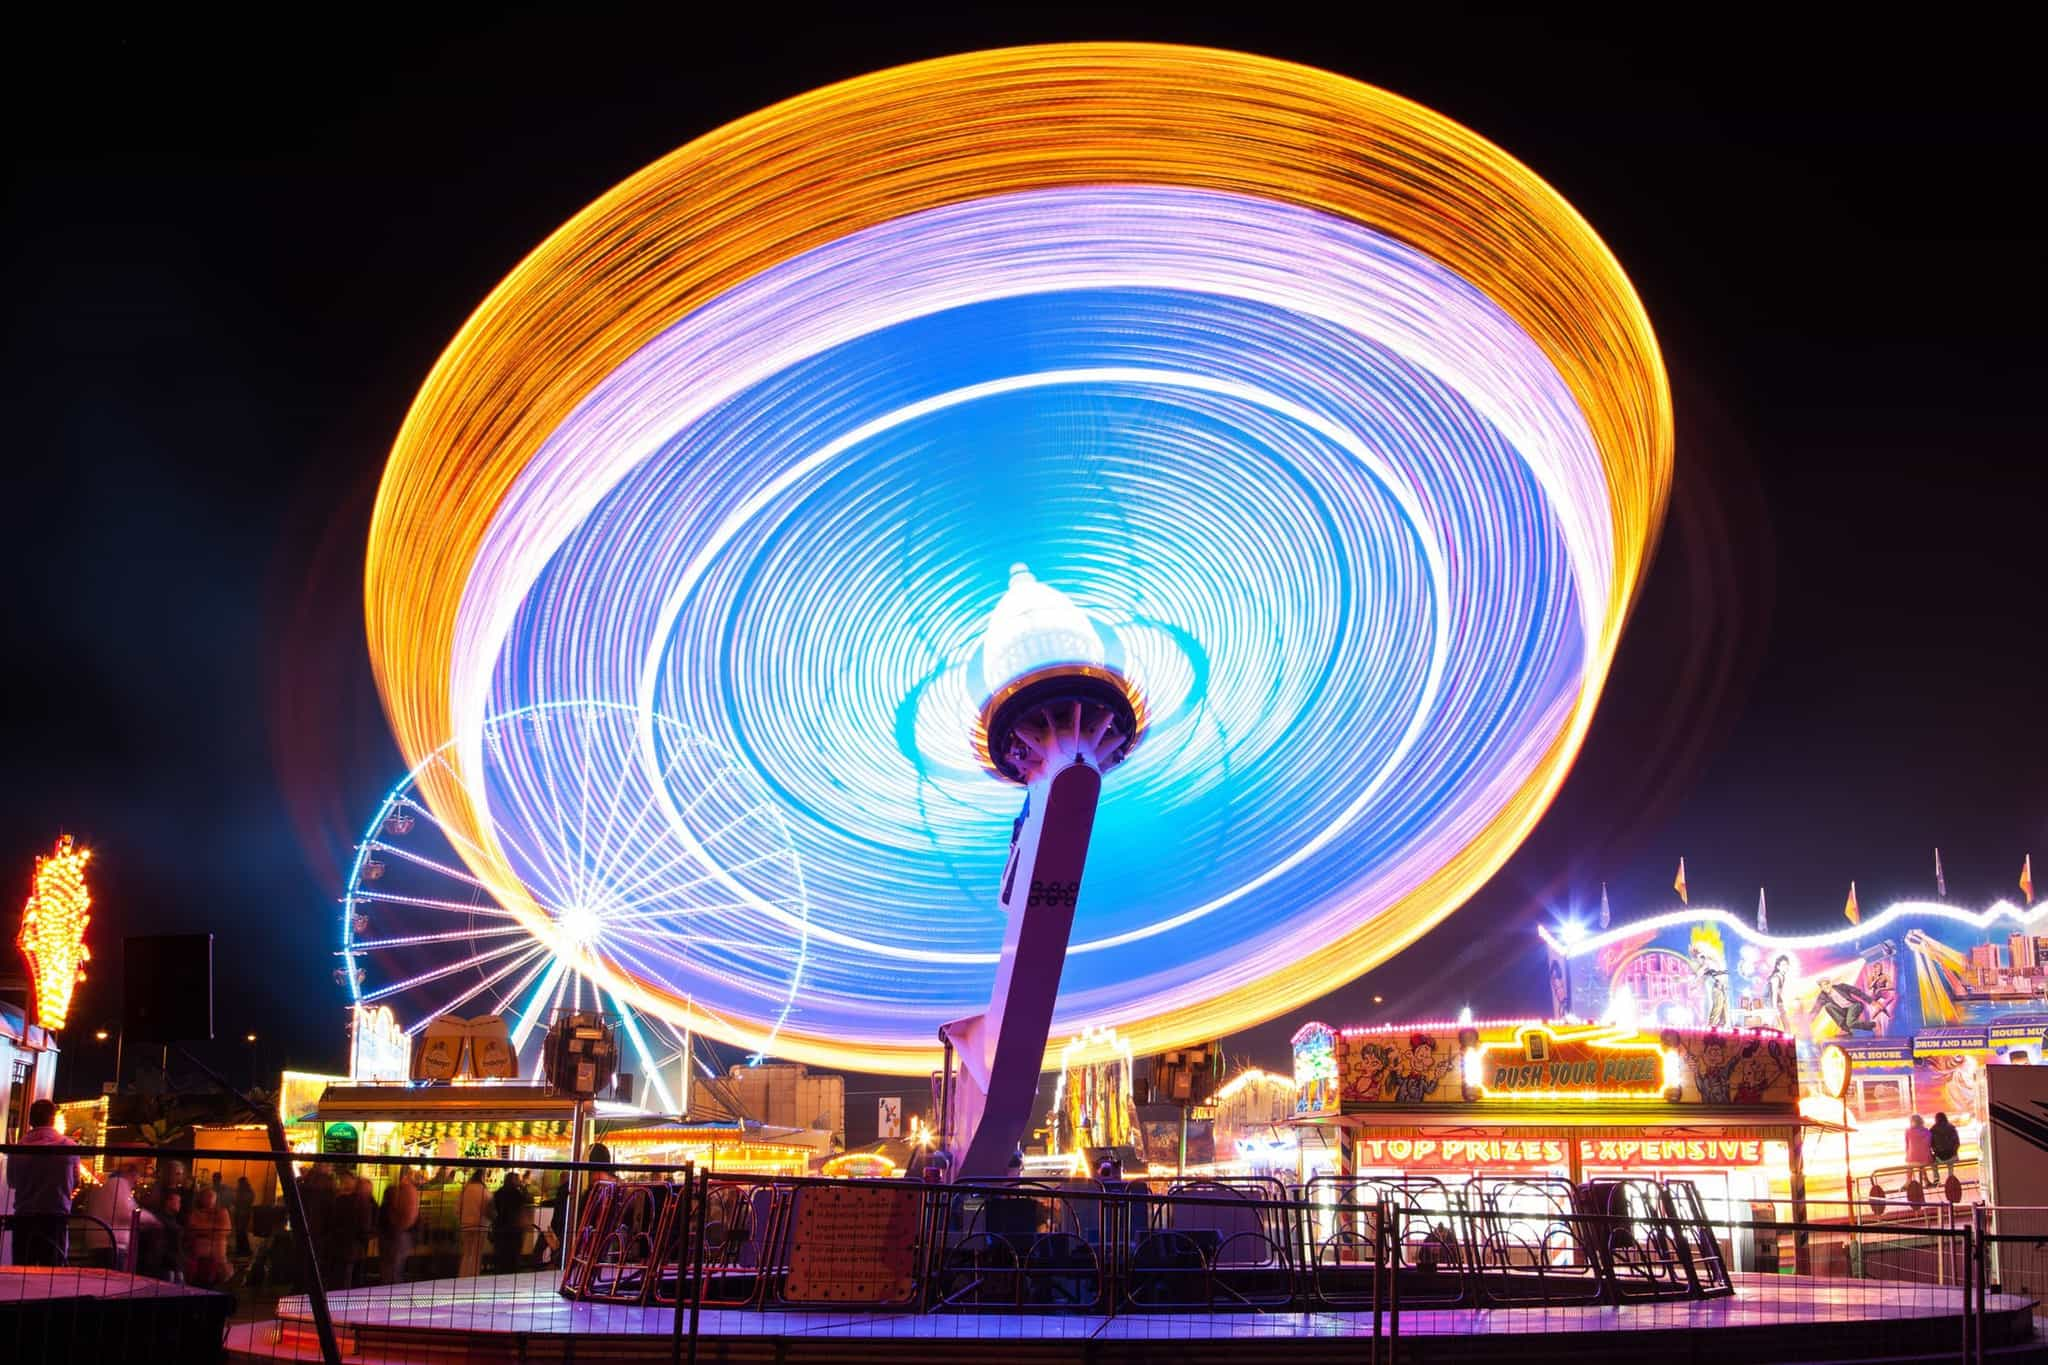 spinning carnival ride lit up at night